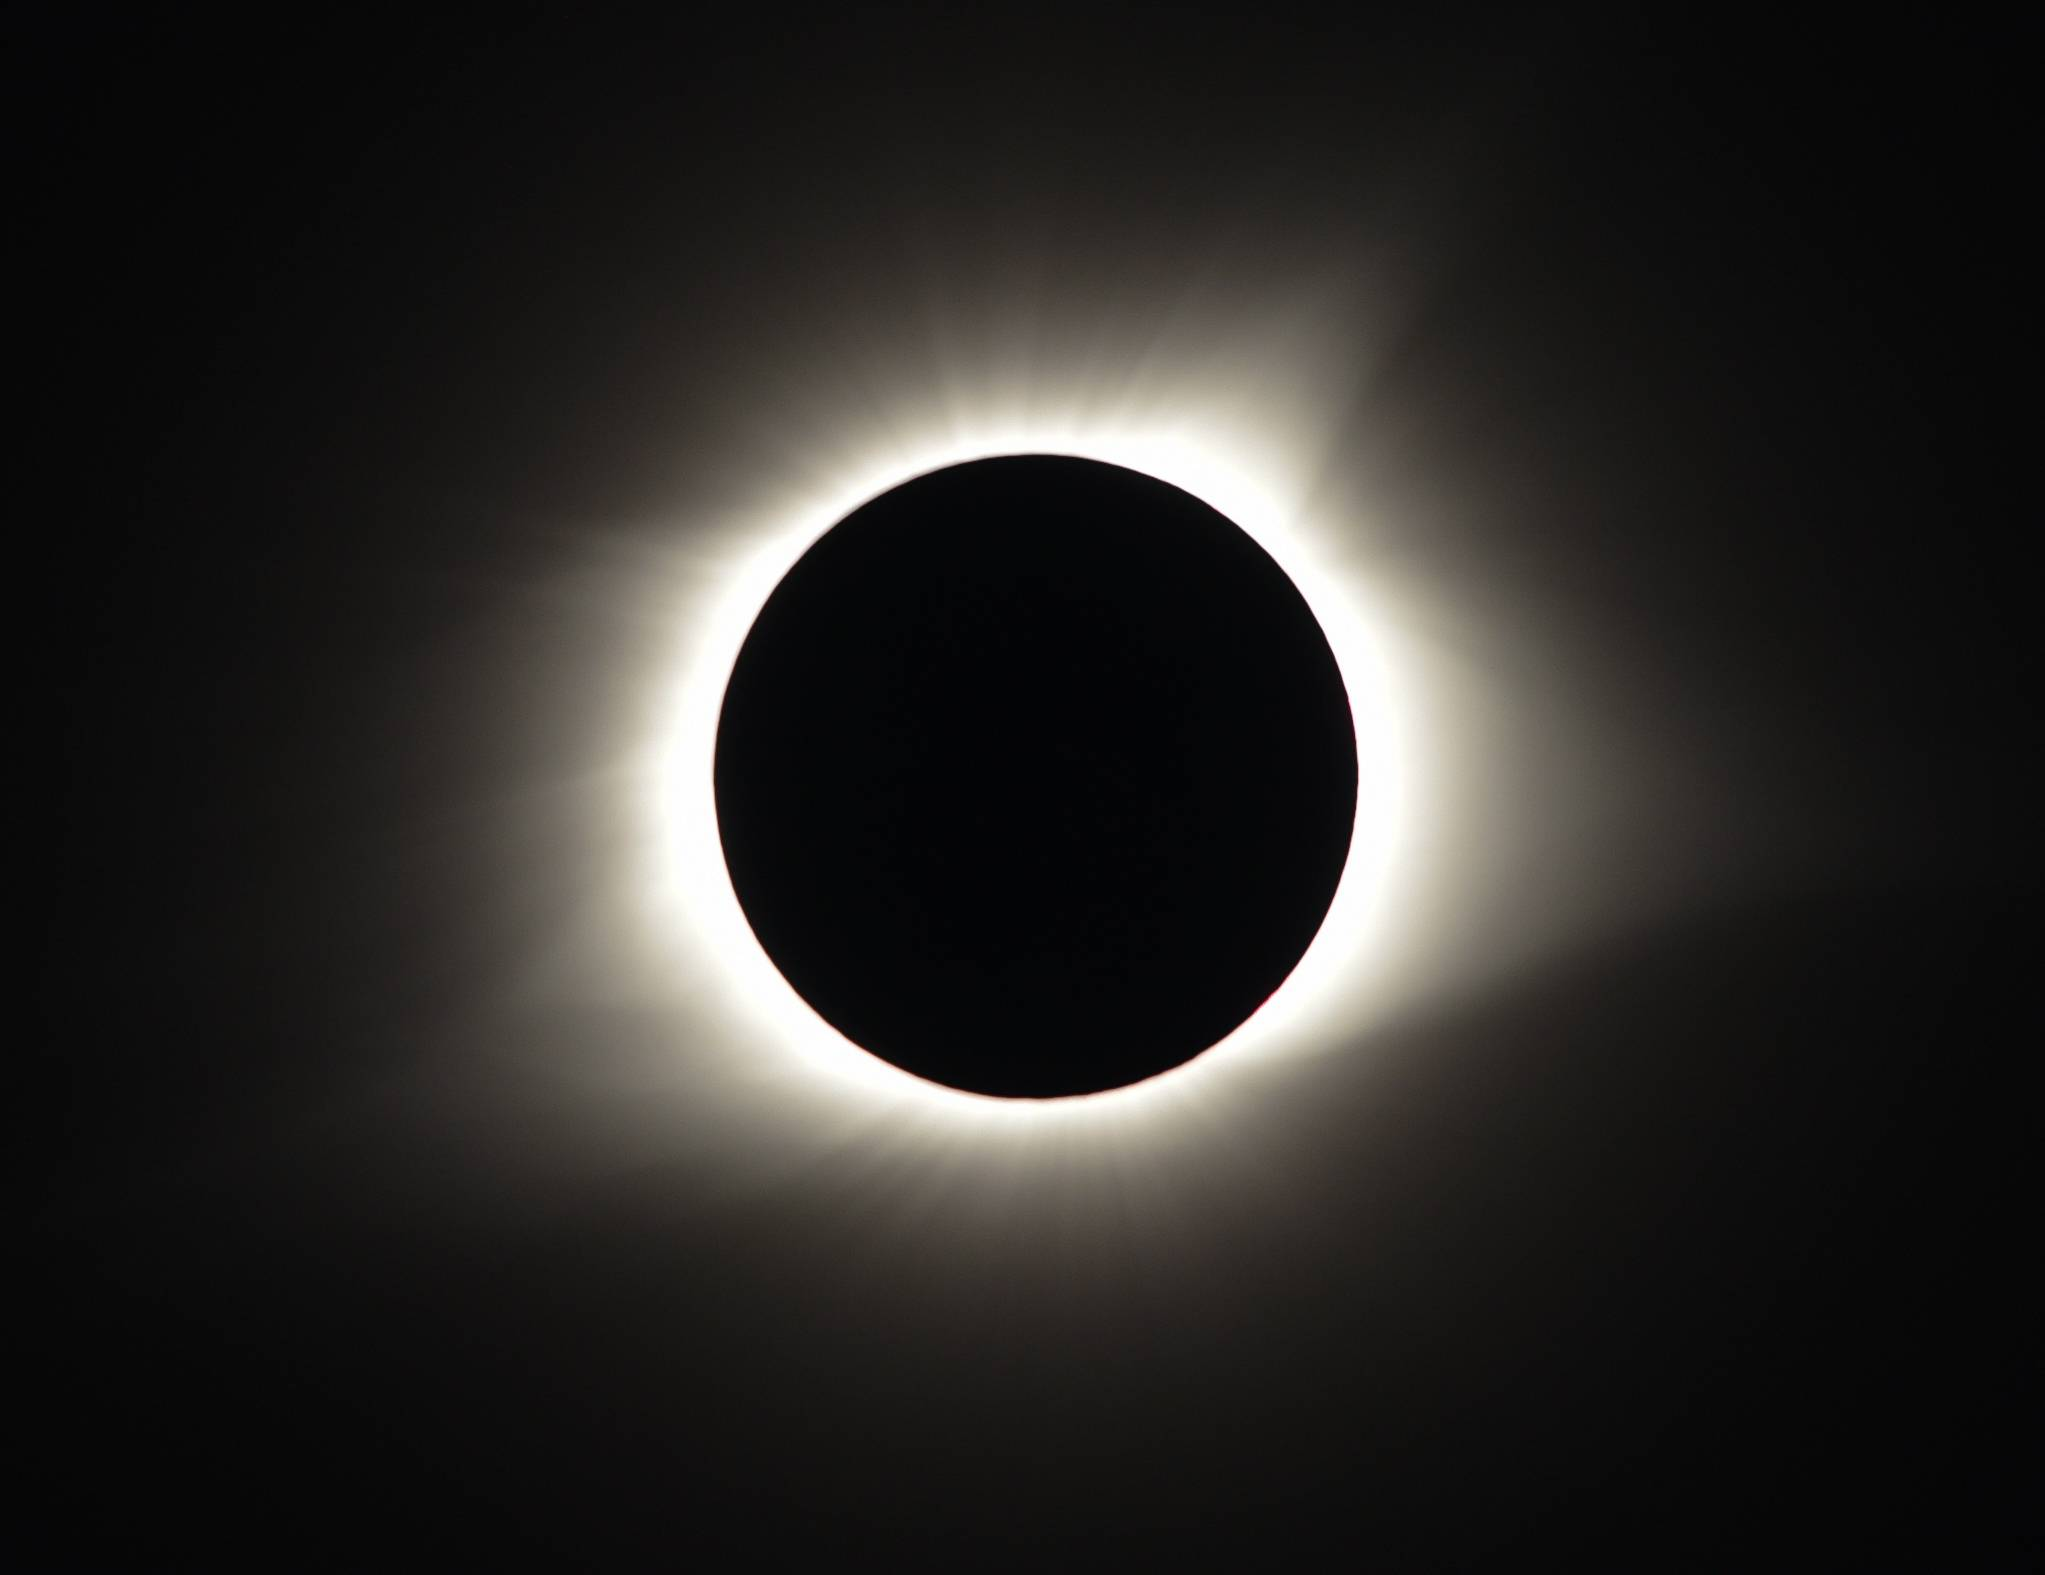 The total eclipse as seen in Chester, IL on August 21, 2017.